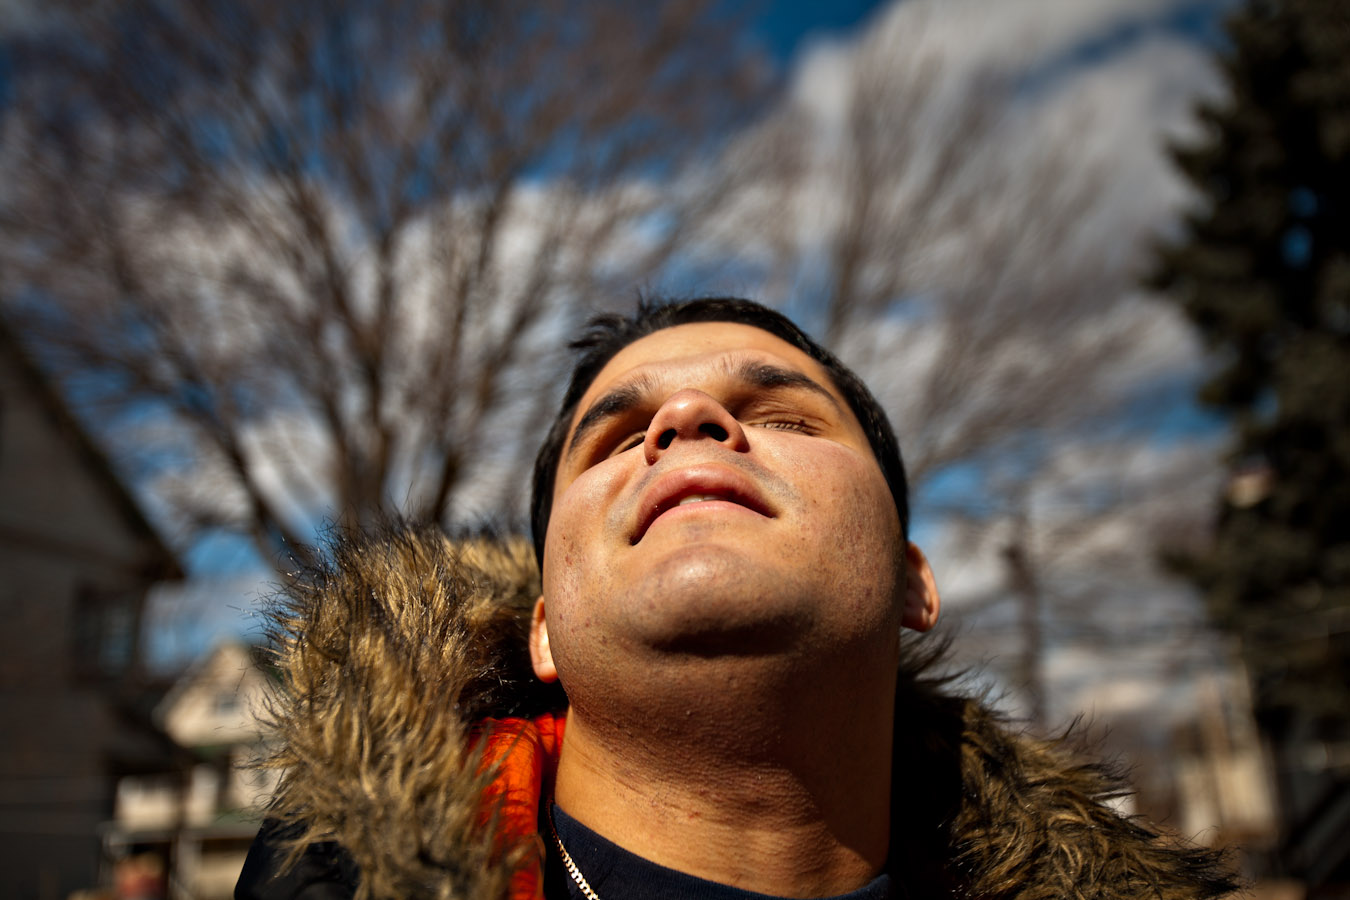 Hector raises his face toward the afternoon sun while waiting for his mobility instructor on a cold winter day in Bridgeport, Conn. Hector works with his trainer on strengthening his ability to travel independently using a cane and his other senses.